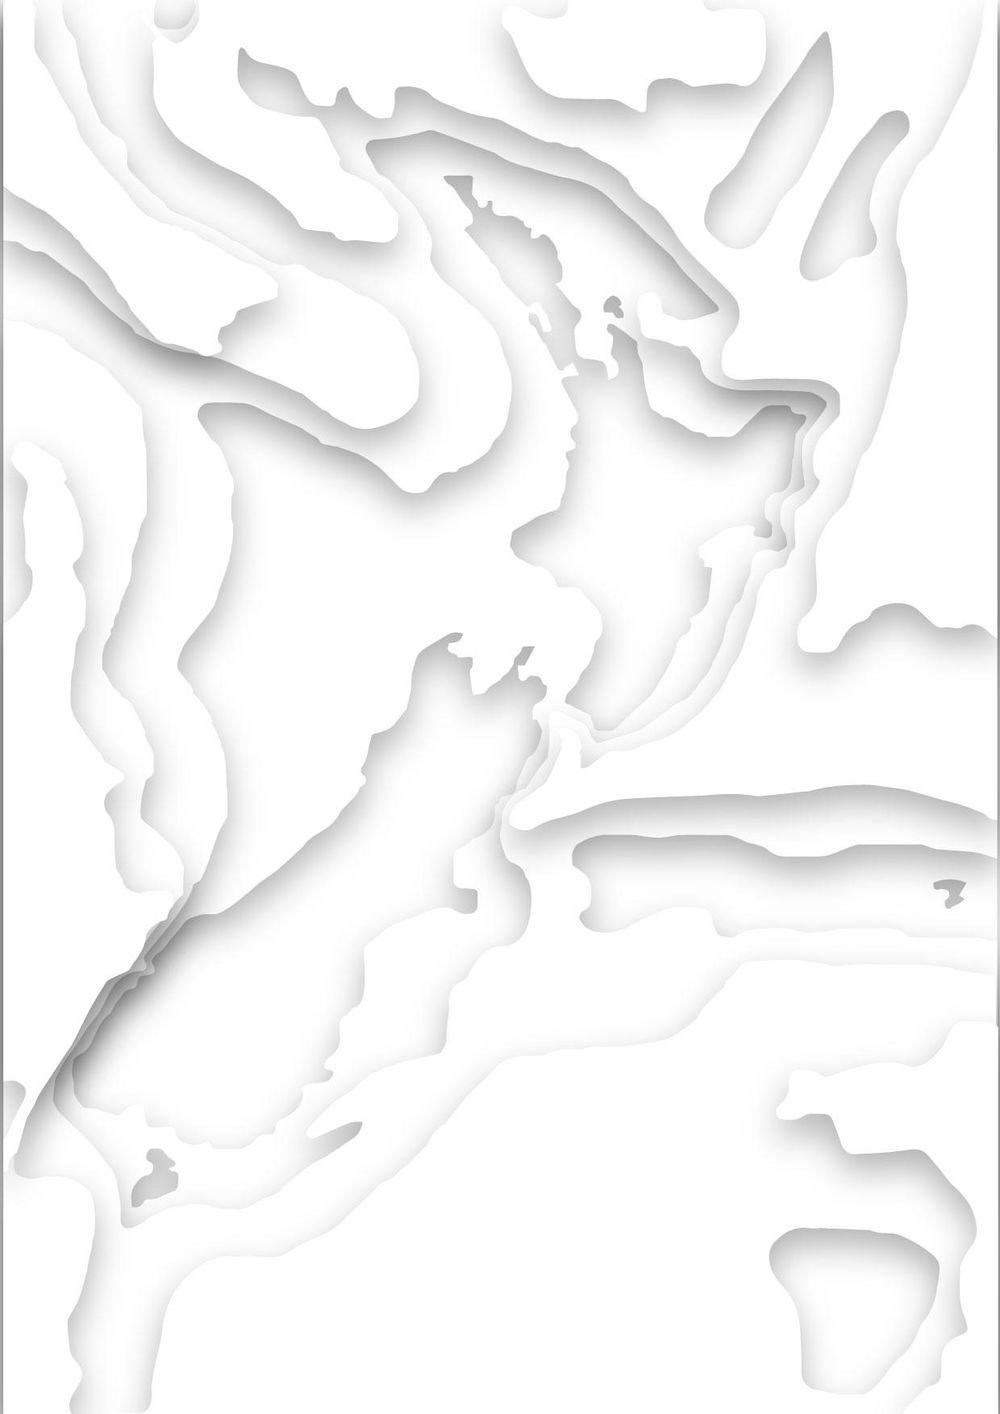 Long White Cloud - image 2 - student project